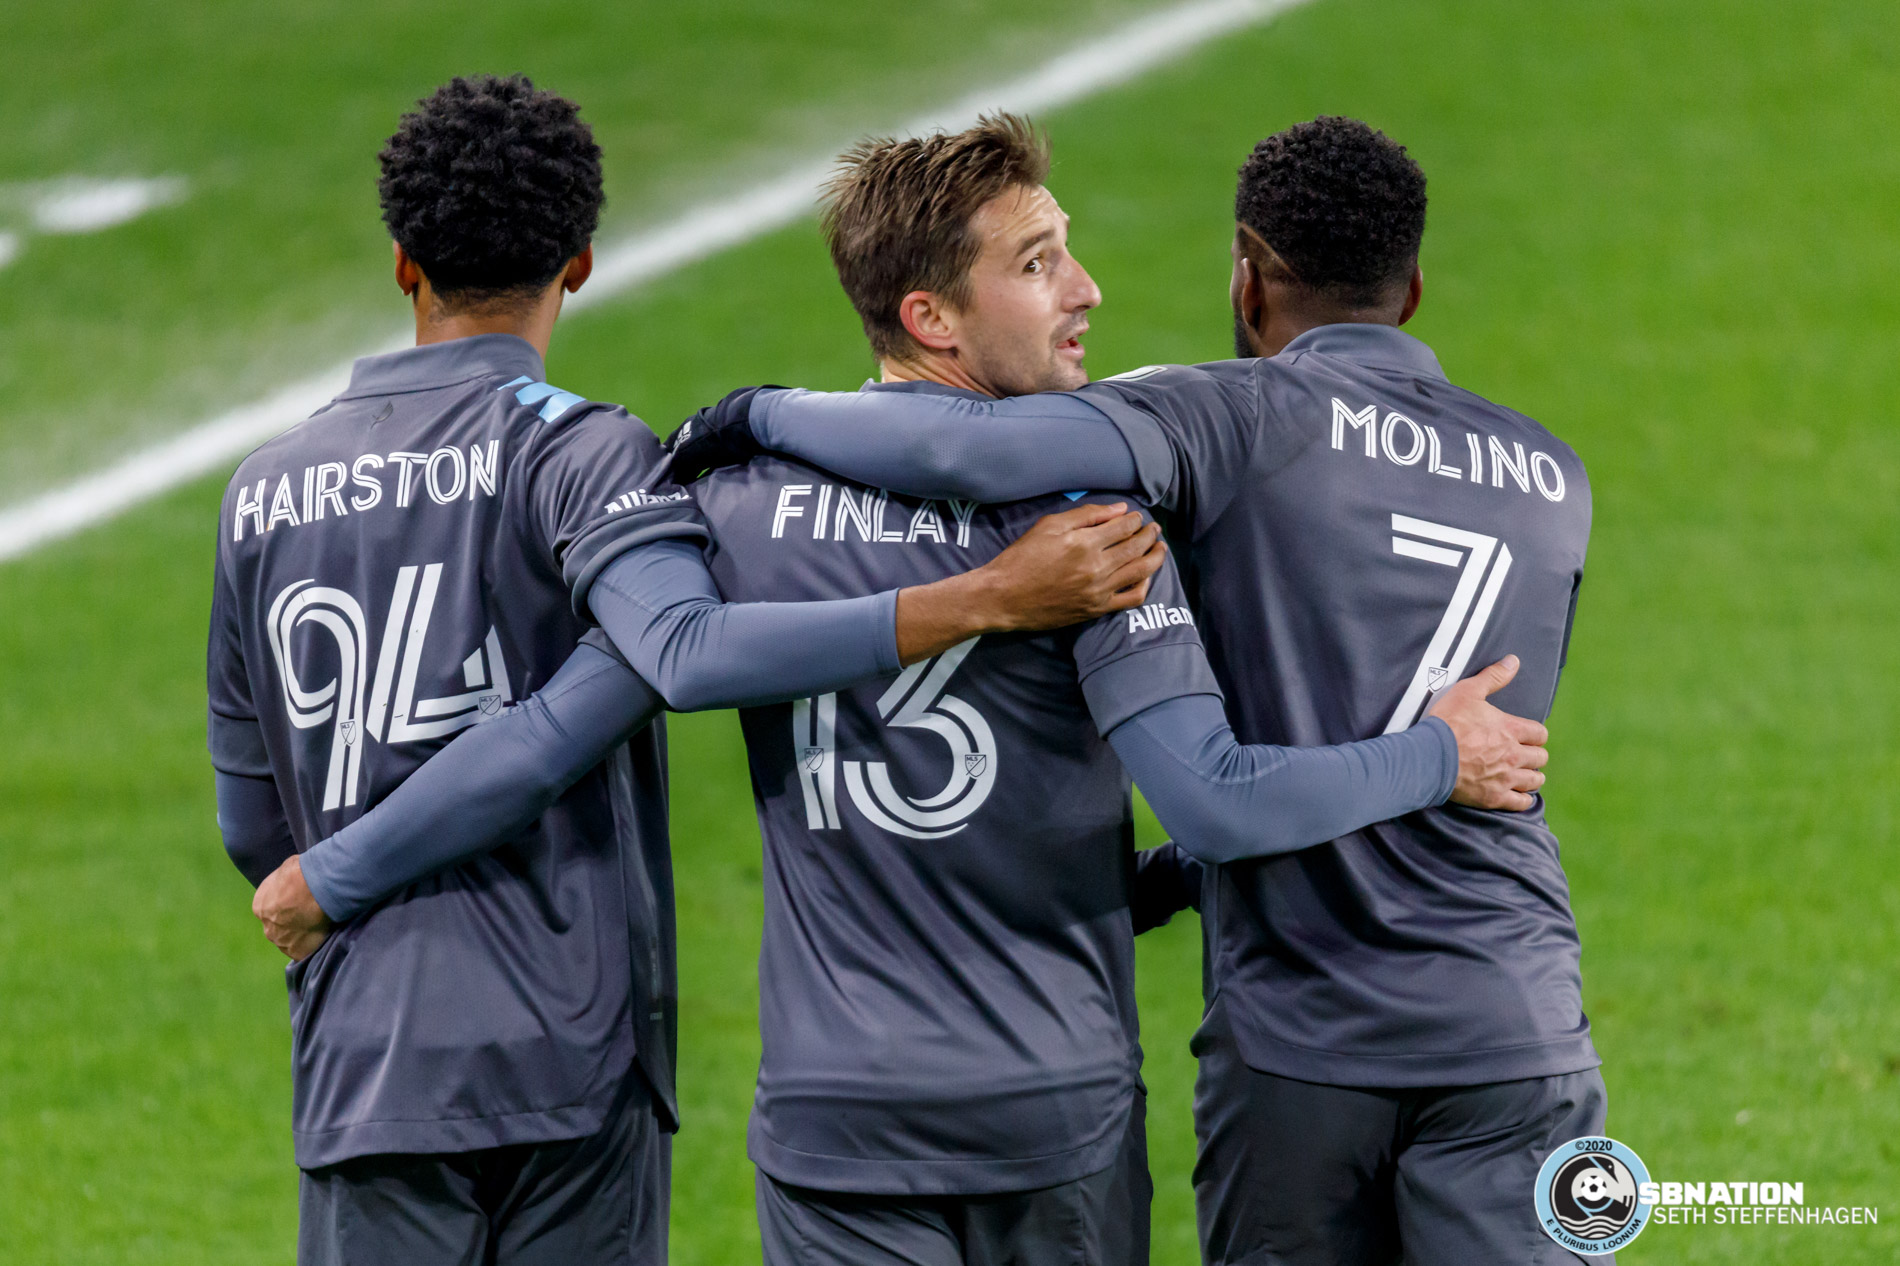 October 28, 2020 - Saint Paul, Minnesota, United States - Minnesota United midfielder Ethan Finlay (13) celebrates with teammates after crossing the ball that lead to an own goal for Minnesota United against the Colorado Rapids at Allianz Field.